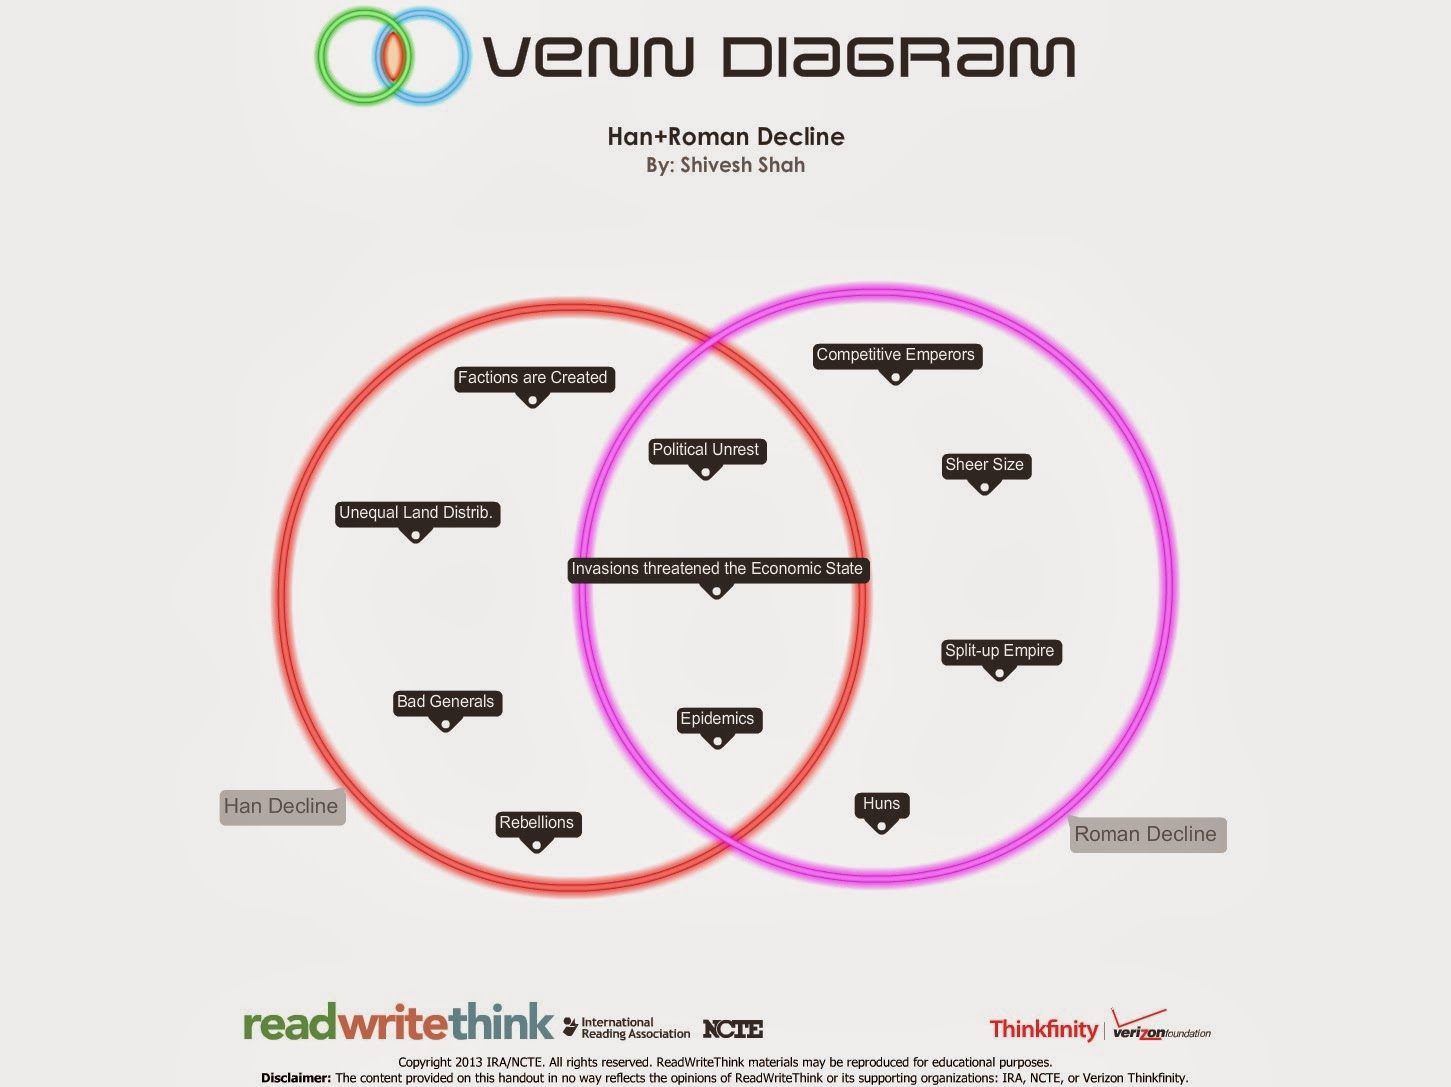 Shivesh shahs ap world history blog han and roman decline venn han and roman decline venn diagram pooptronica Images